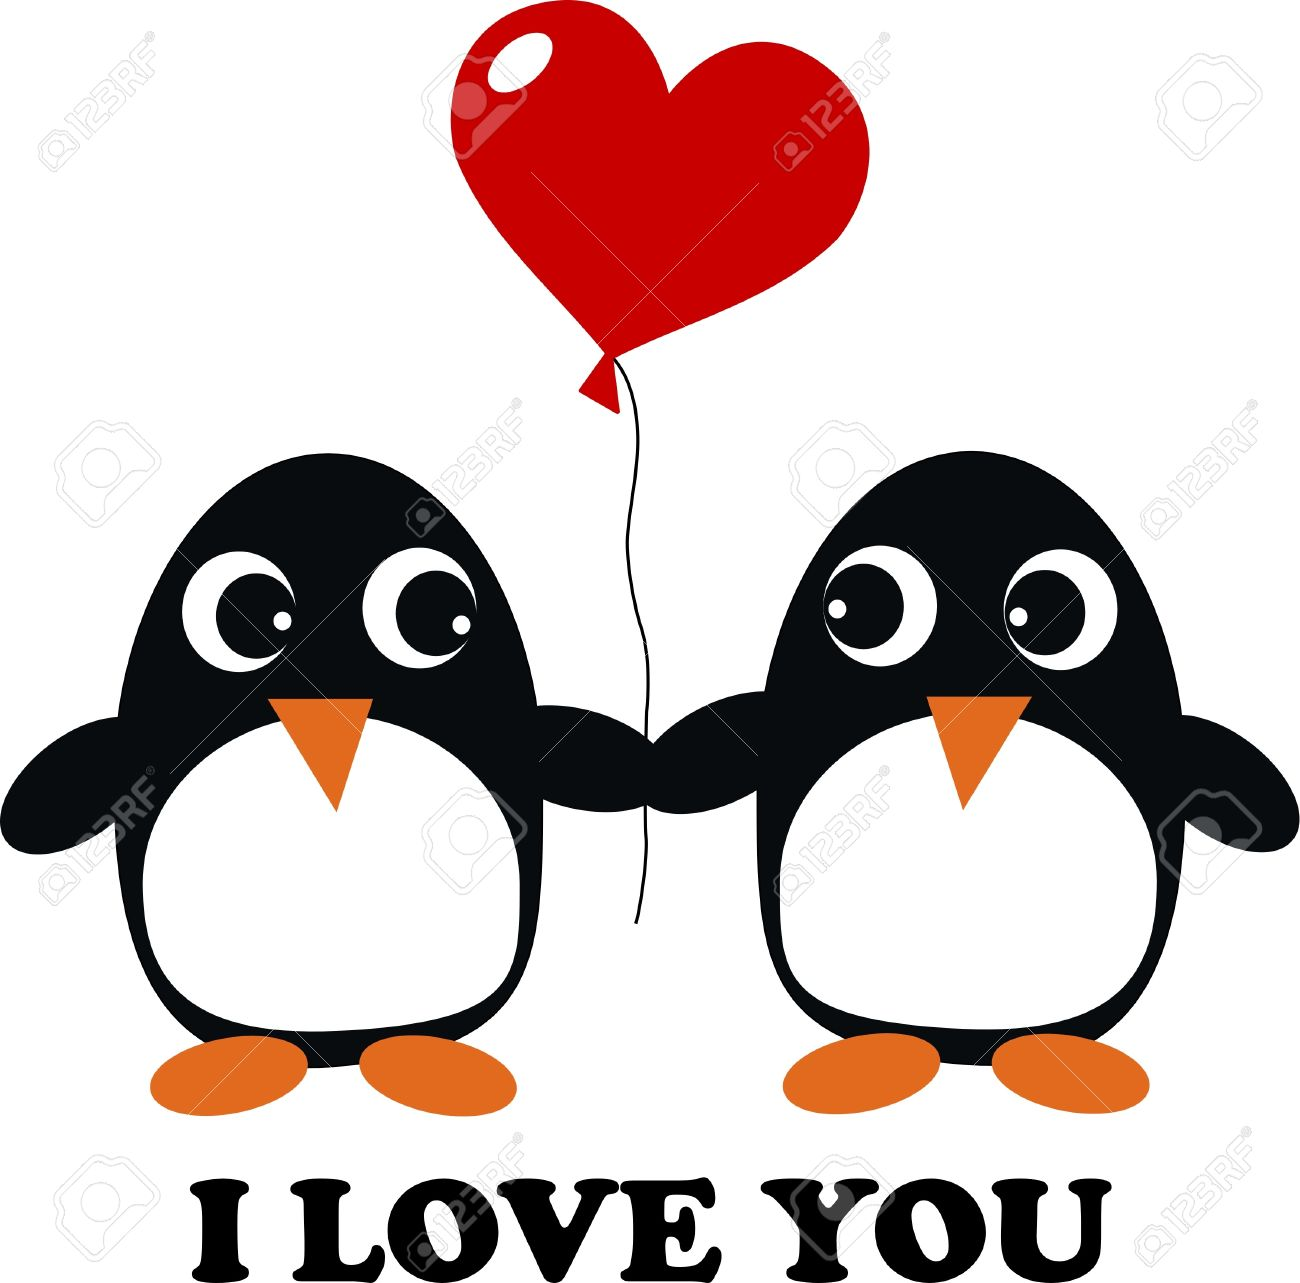 i love you royalty free cliparts vectors and stock illustration rh 123rf com I Love You Cute Graphics I Love You Cute Graphics